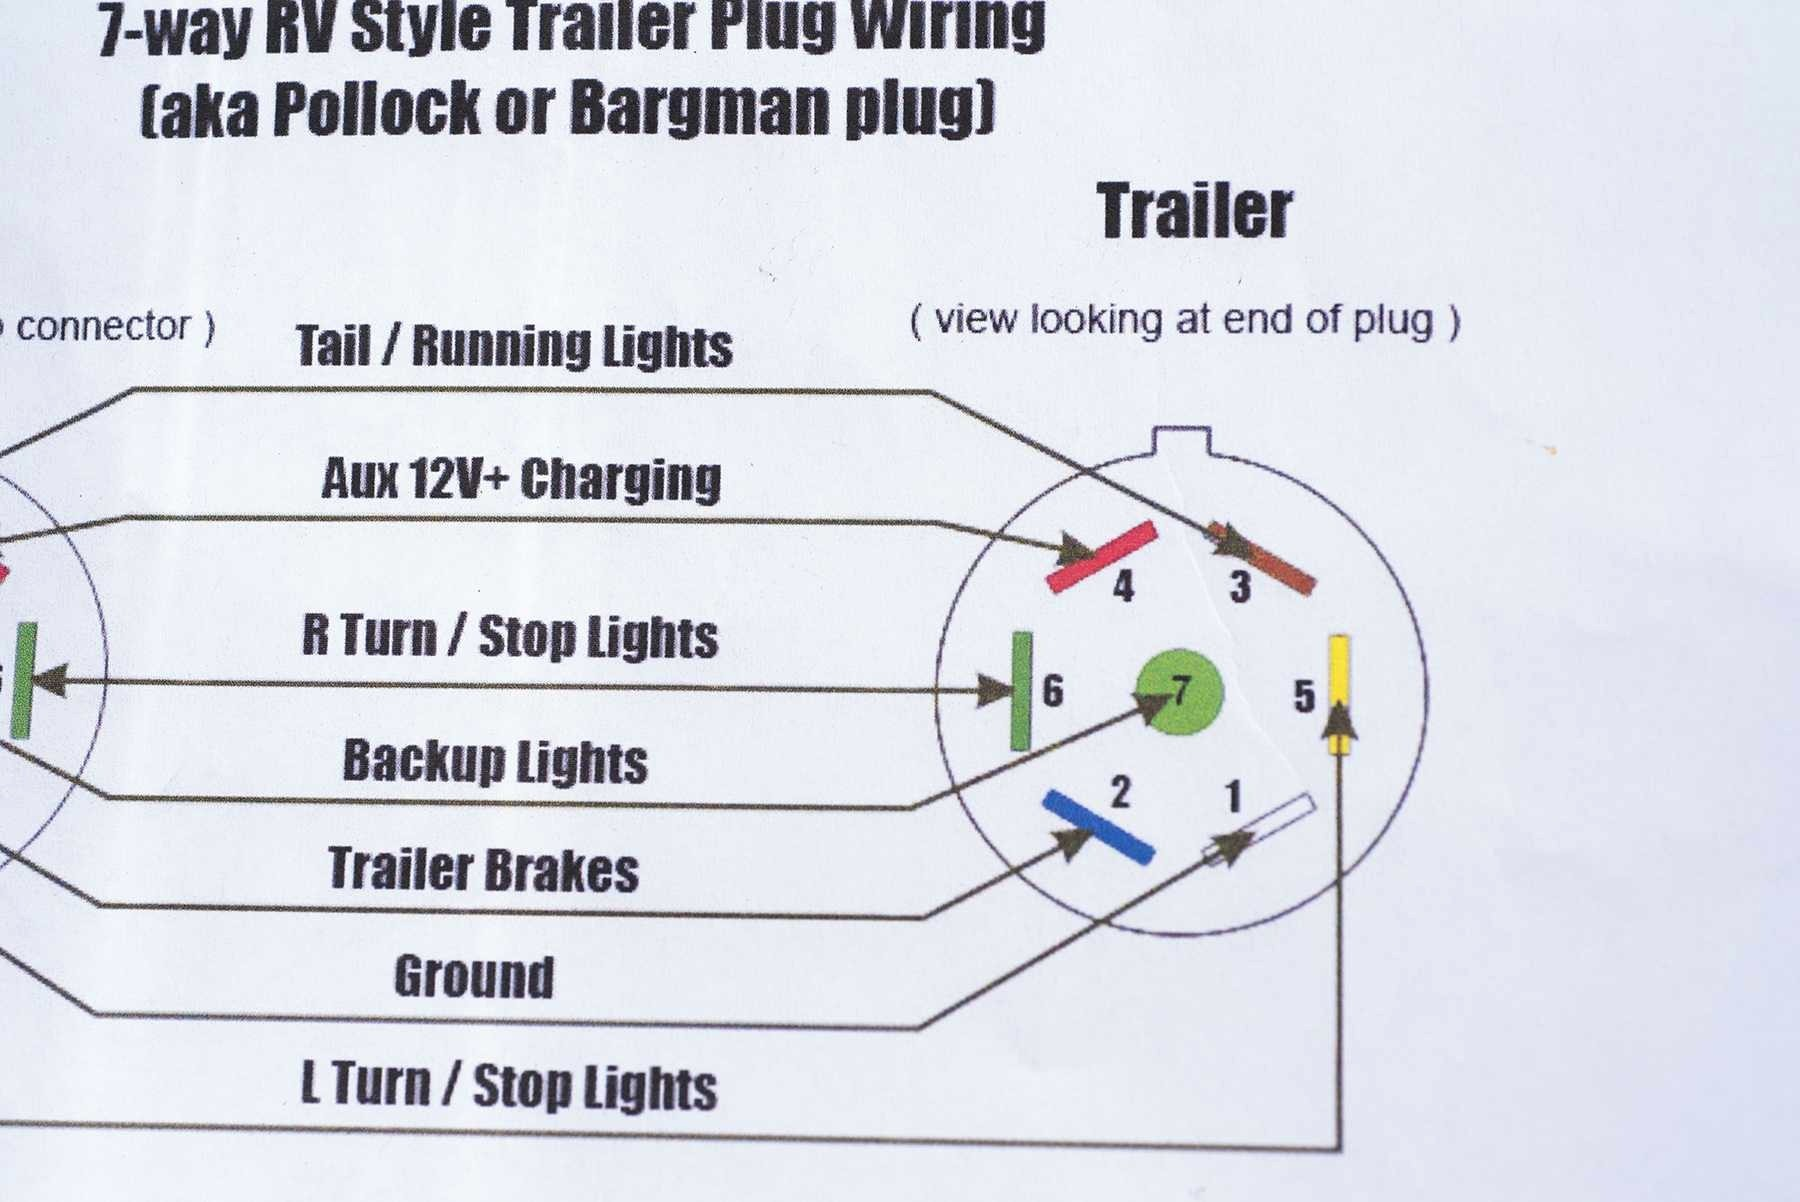 Trailer 7 Pin Wiring Diagram 7 Pin Trailer Wiring Diagram with Brakes Luxury Wiring Diagram for Of Trailer 7 Pin Wiring Diagram